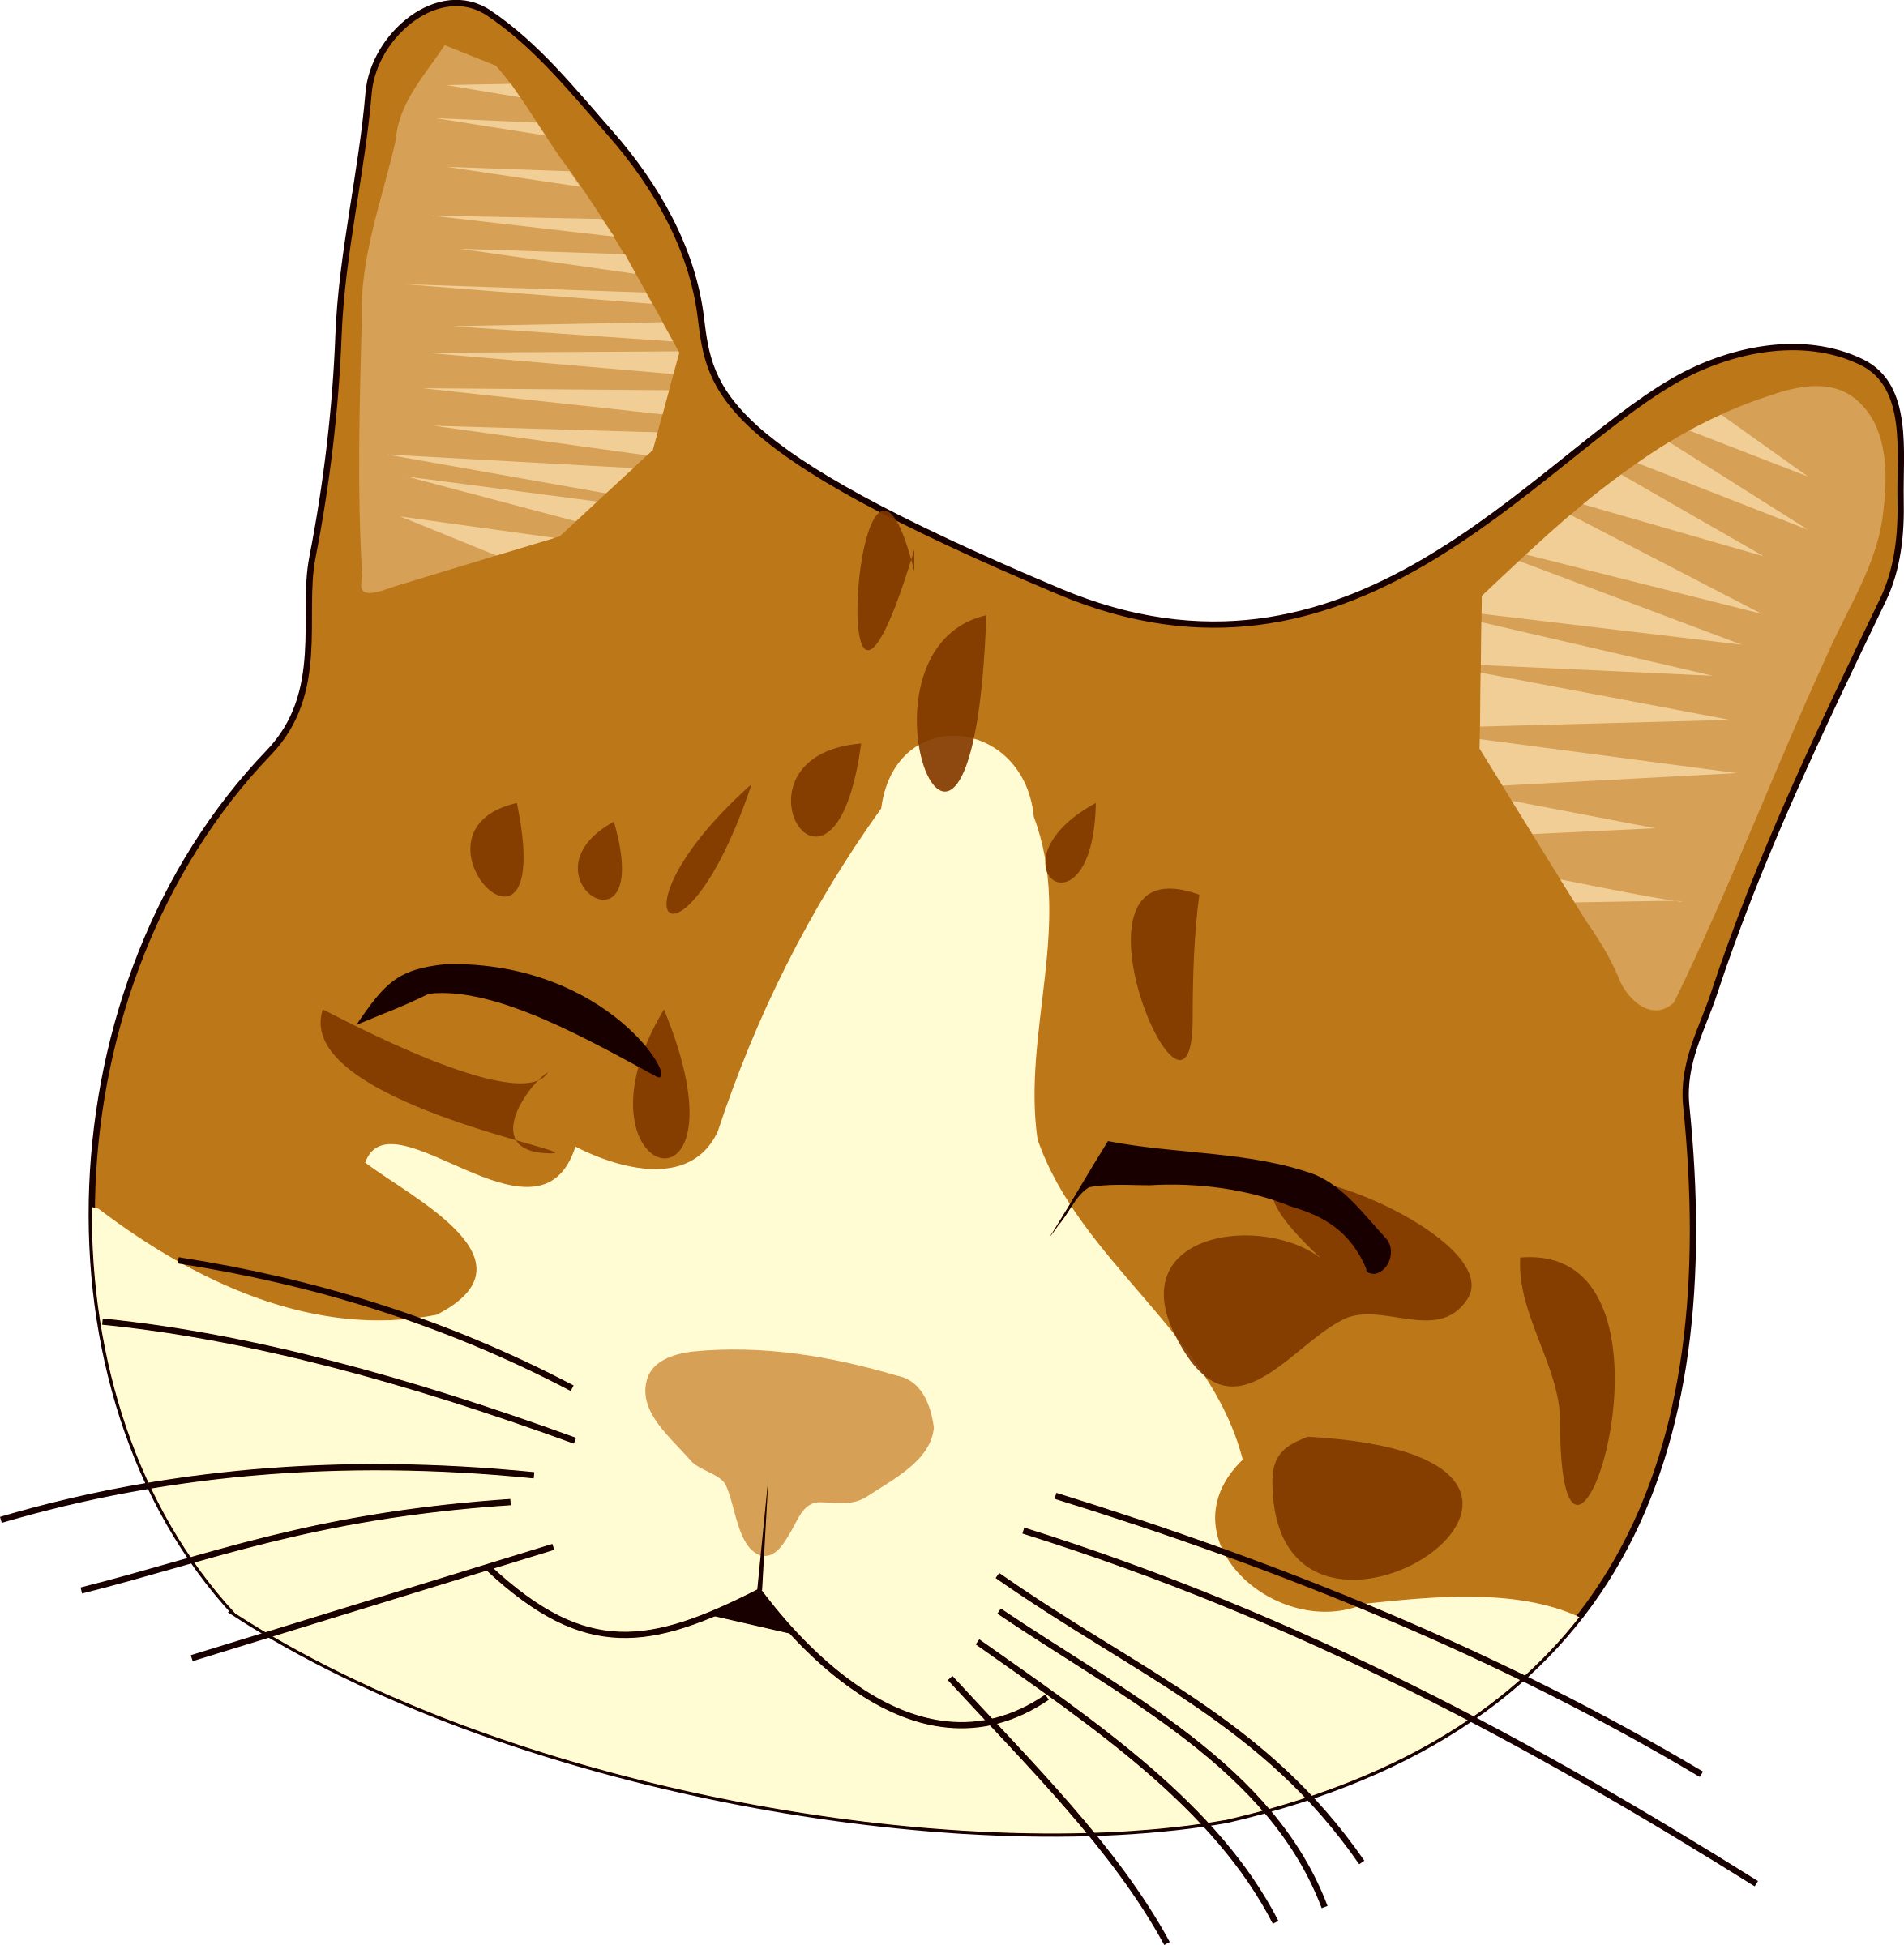 Image id png photo. Cat clip art transparent background banner free download